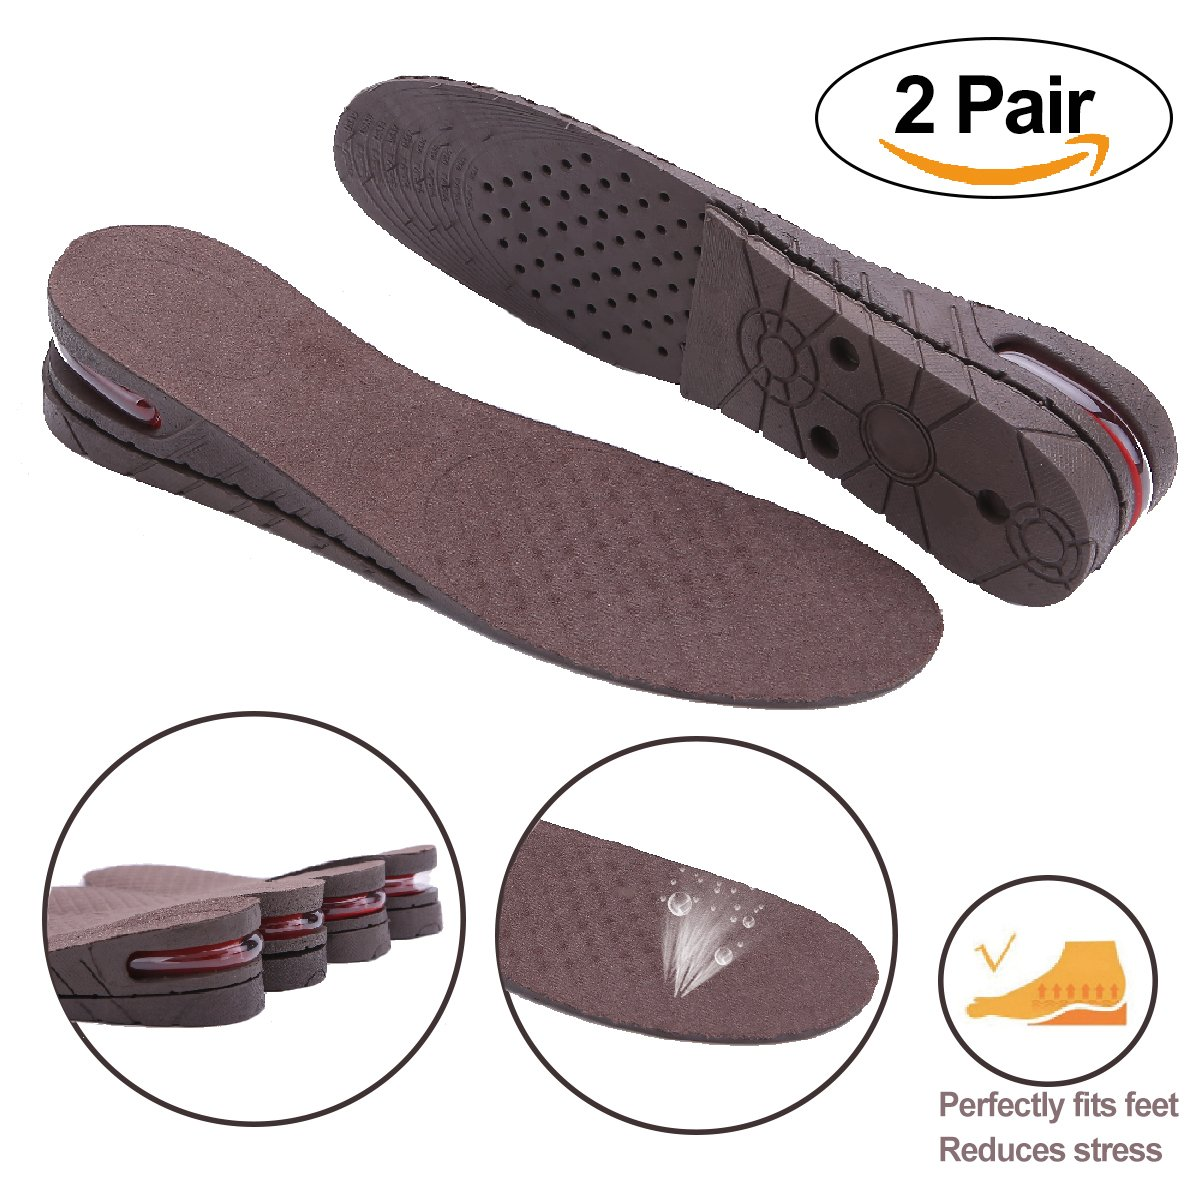 Height Increase Insoles Inserts 2-Layer Adjustable Air Cushion Heels Shoes Pad Elevator Lift Kit  for Women & Man (2 Pair)